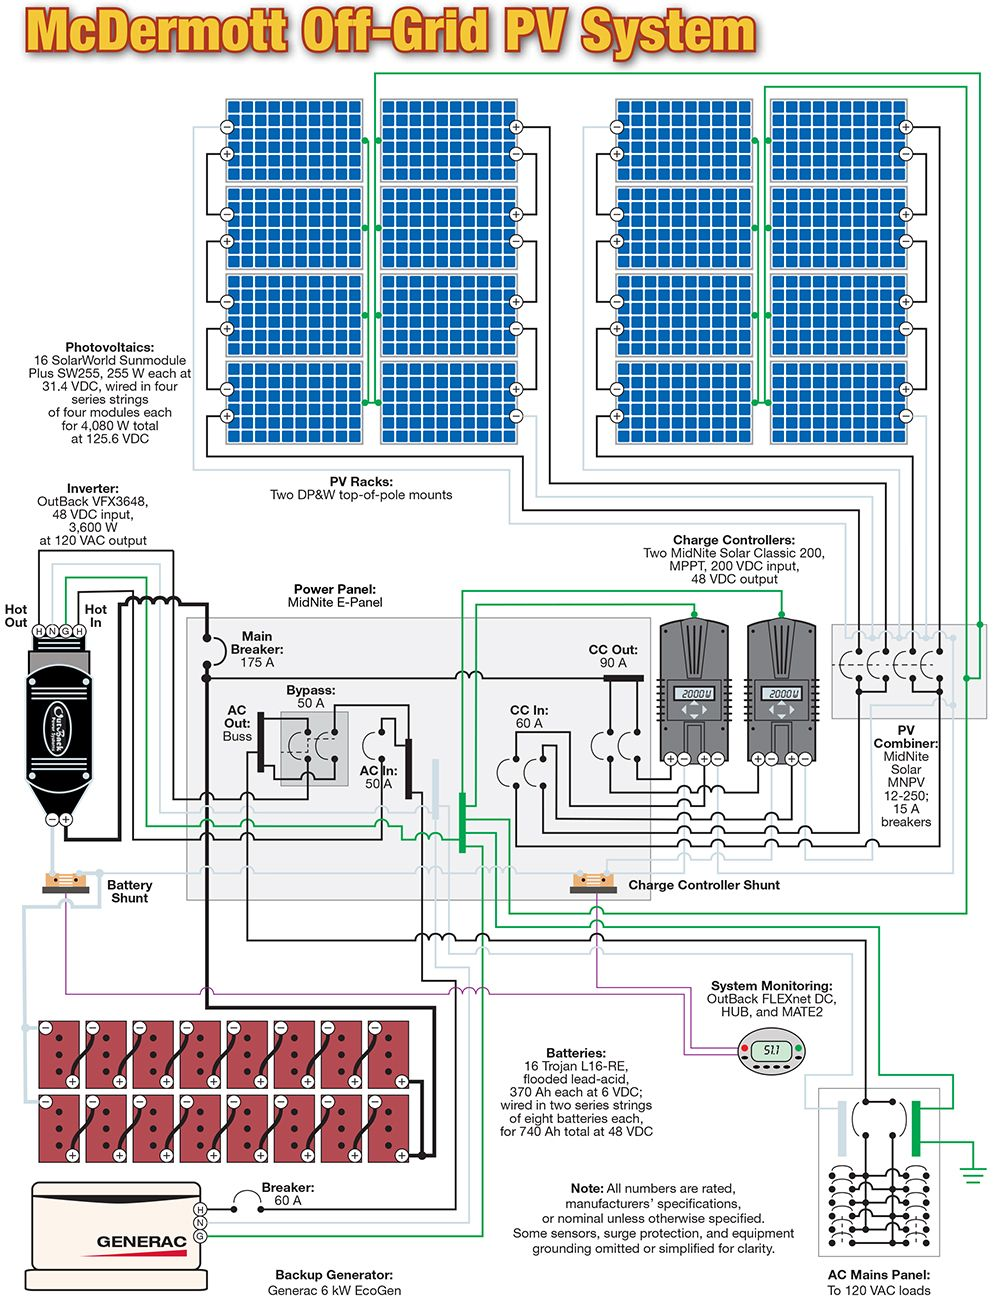 wiring off grid pv system 4kwh stuff to rh pinterest com off grid wiring  diagram off grid wringer washers diy